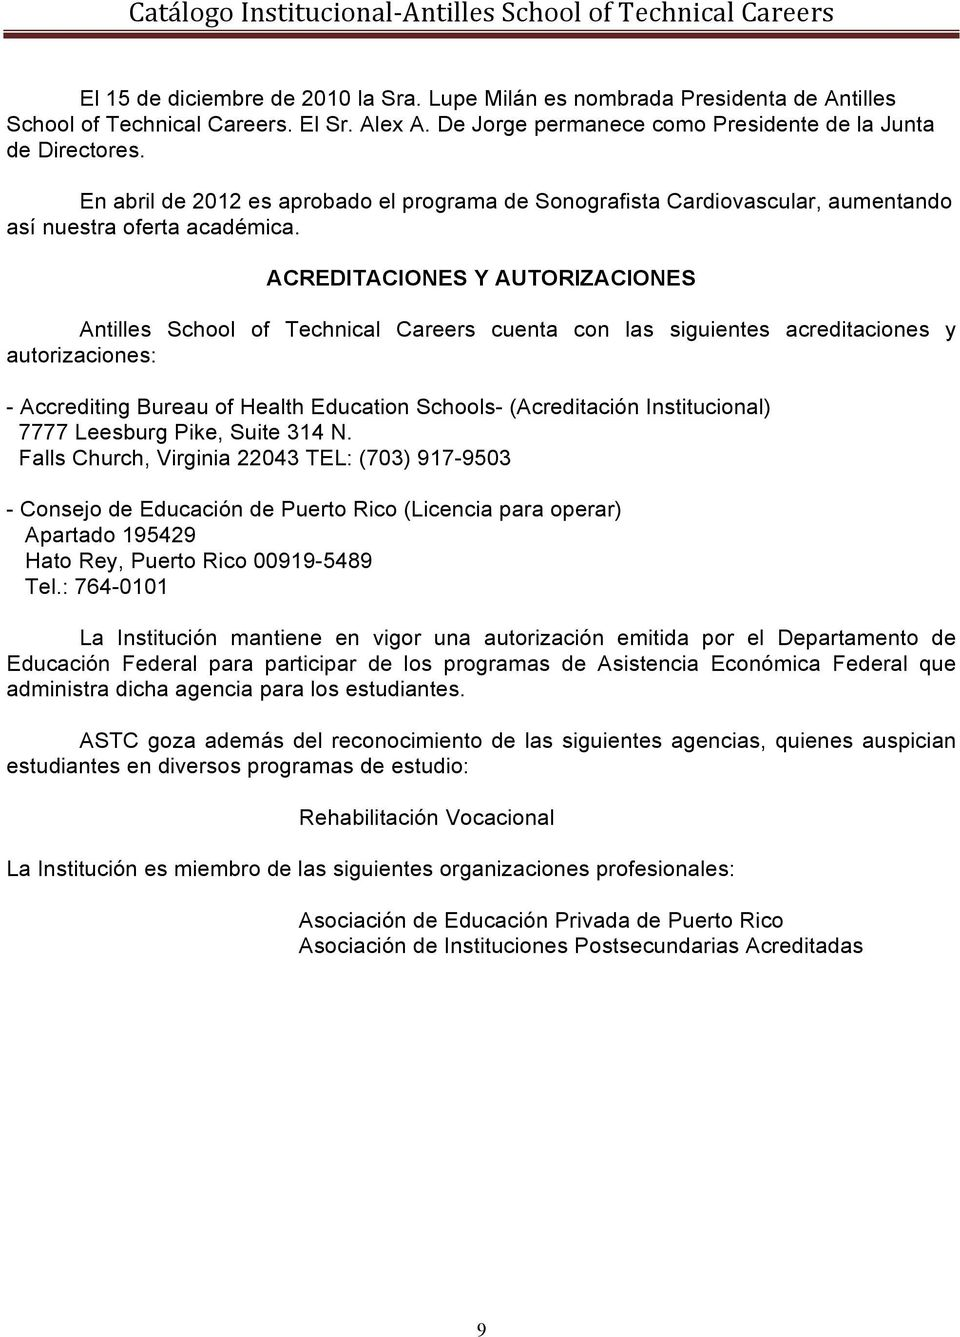 ACREDITACIONES Y AUTORIZACIONES Antilles School of Technical Careers cuenta con las siguientes acreditaciones y autorizaciones: - Accrediting Bureau of Health Education Schools- (Acreditación